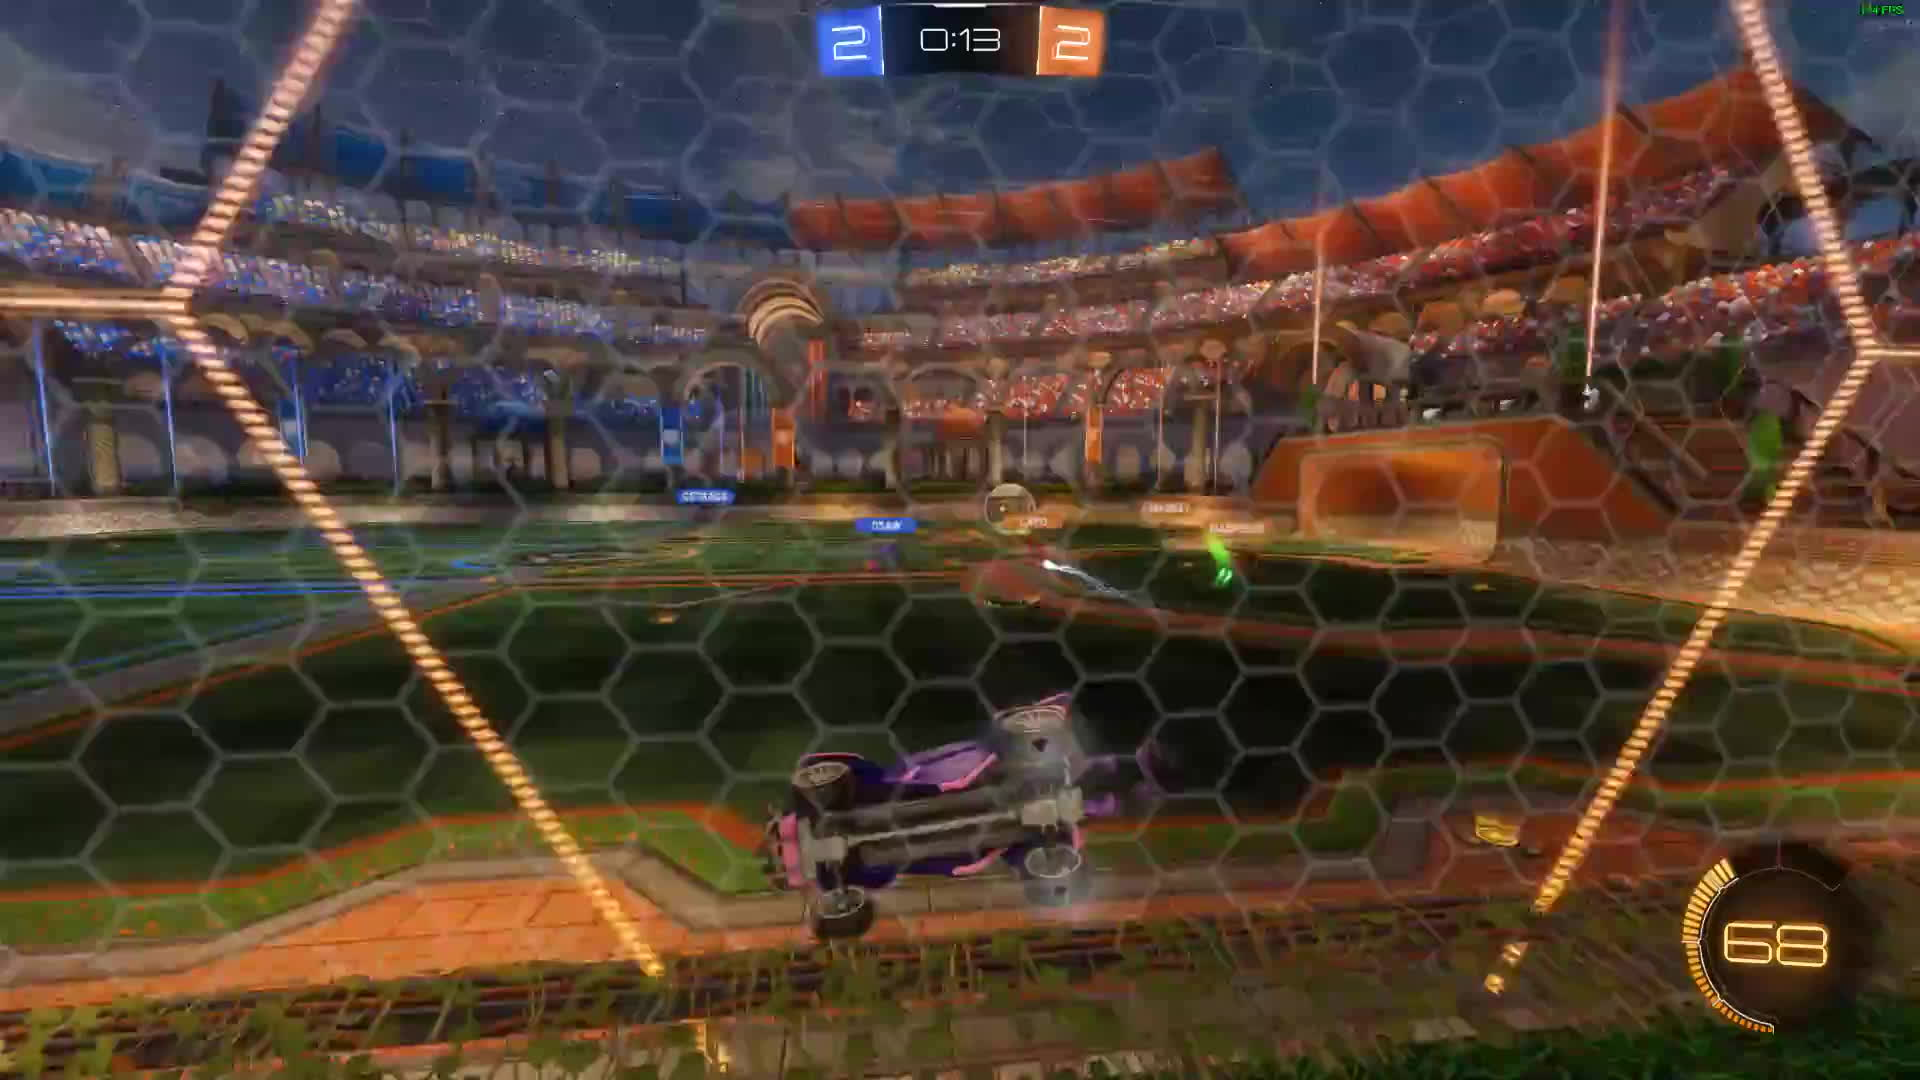 Rocket League, rocketleague, RL - 172 km/h team-pinch to victory - opponent POV GIFs